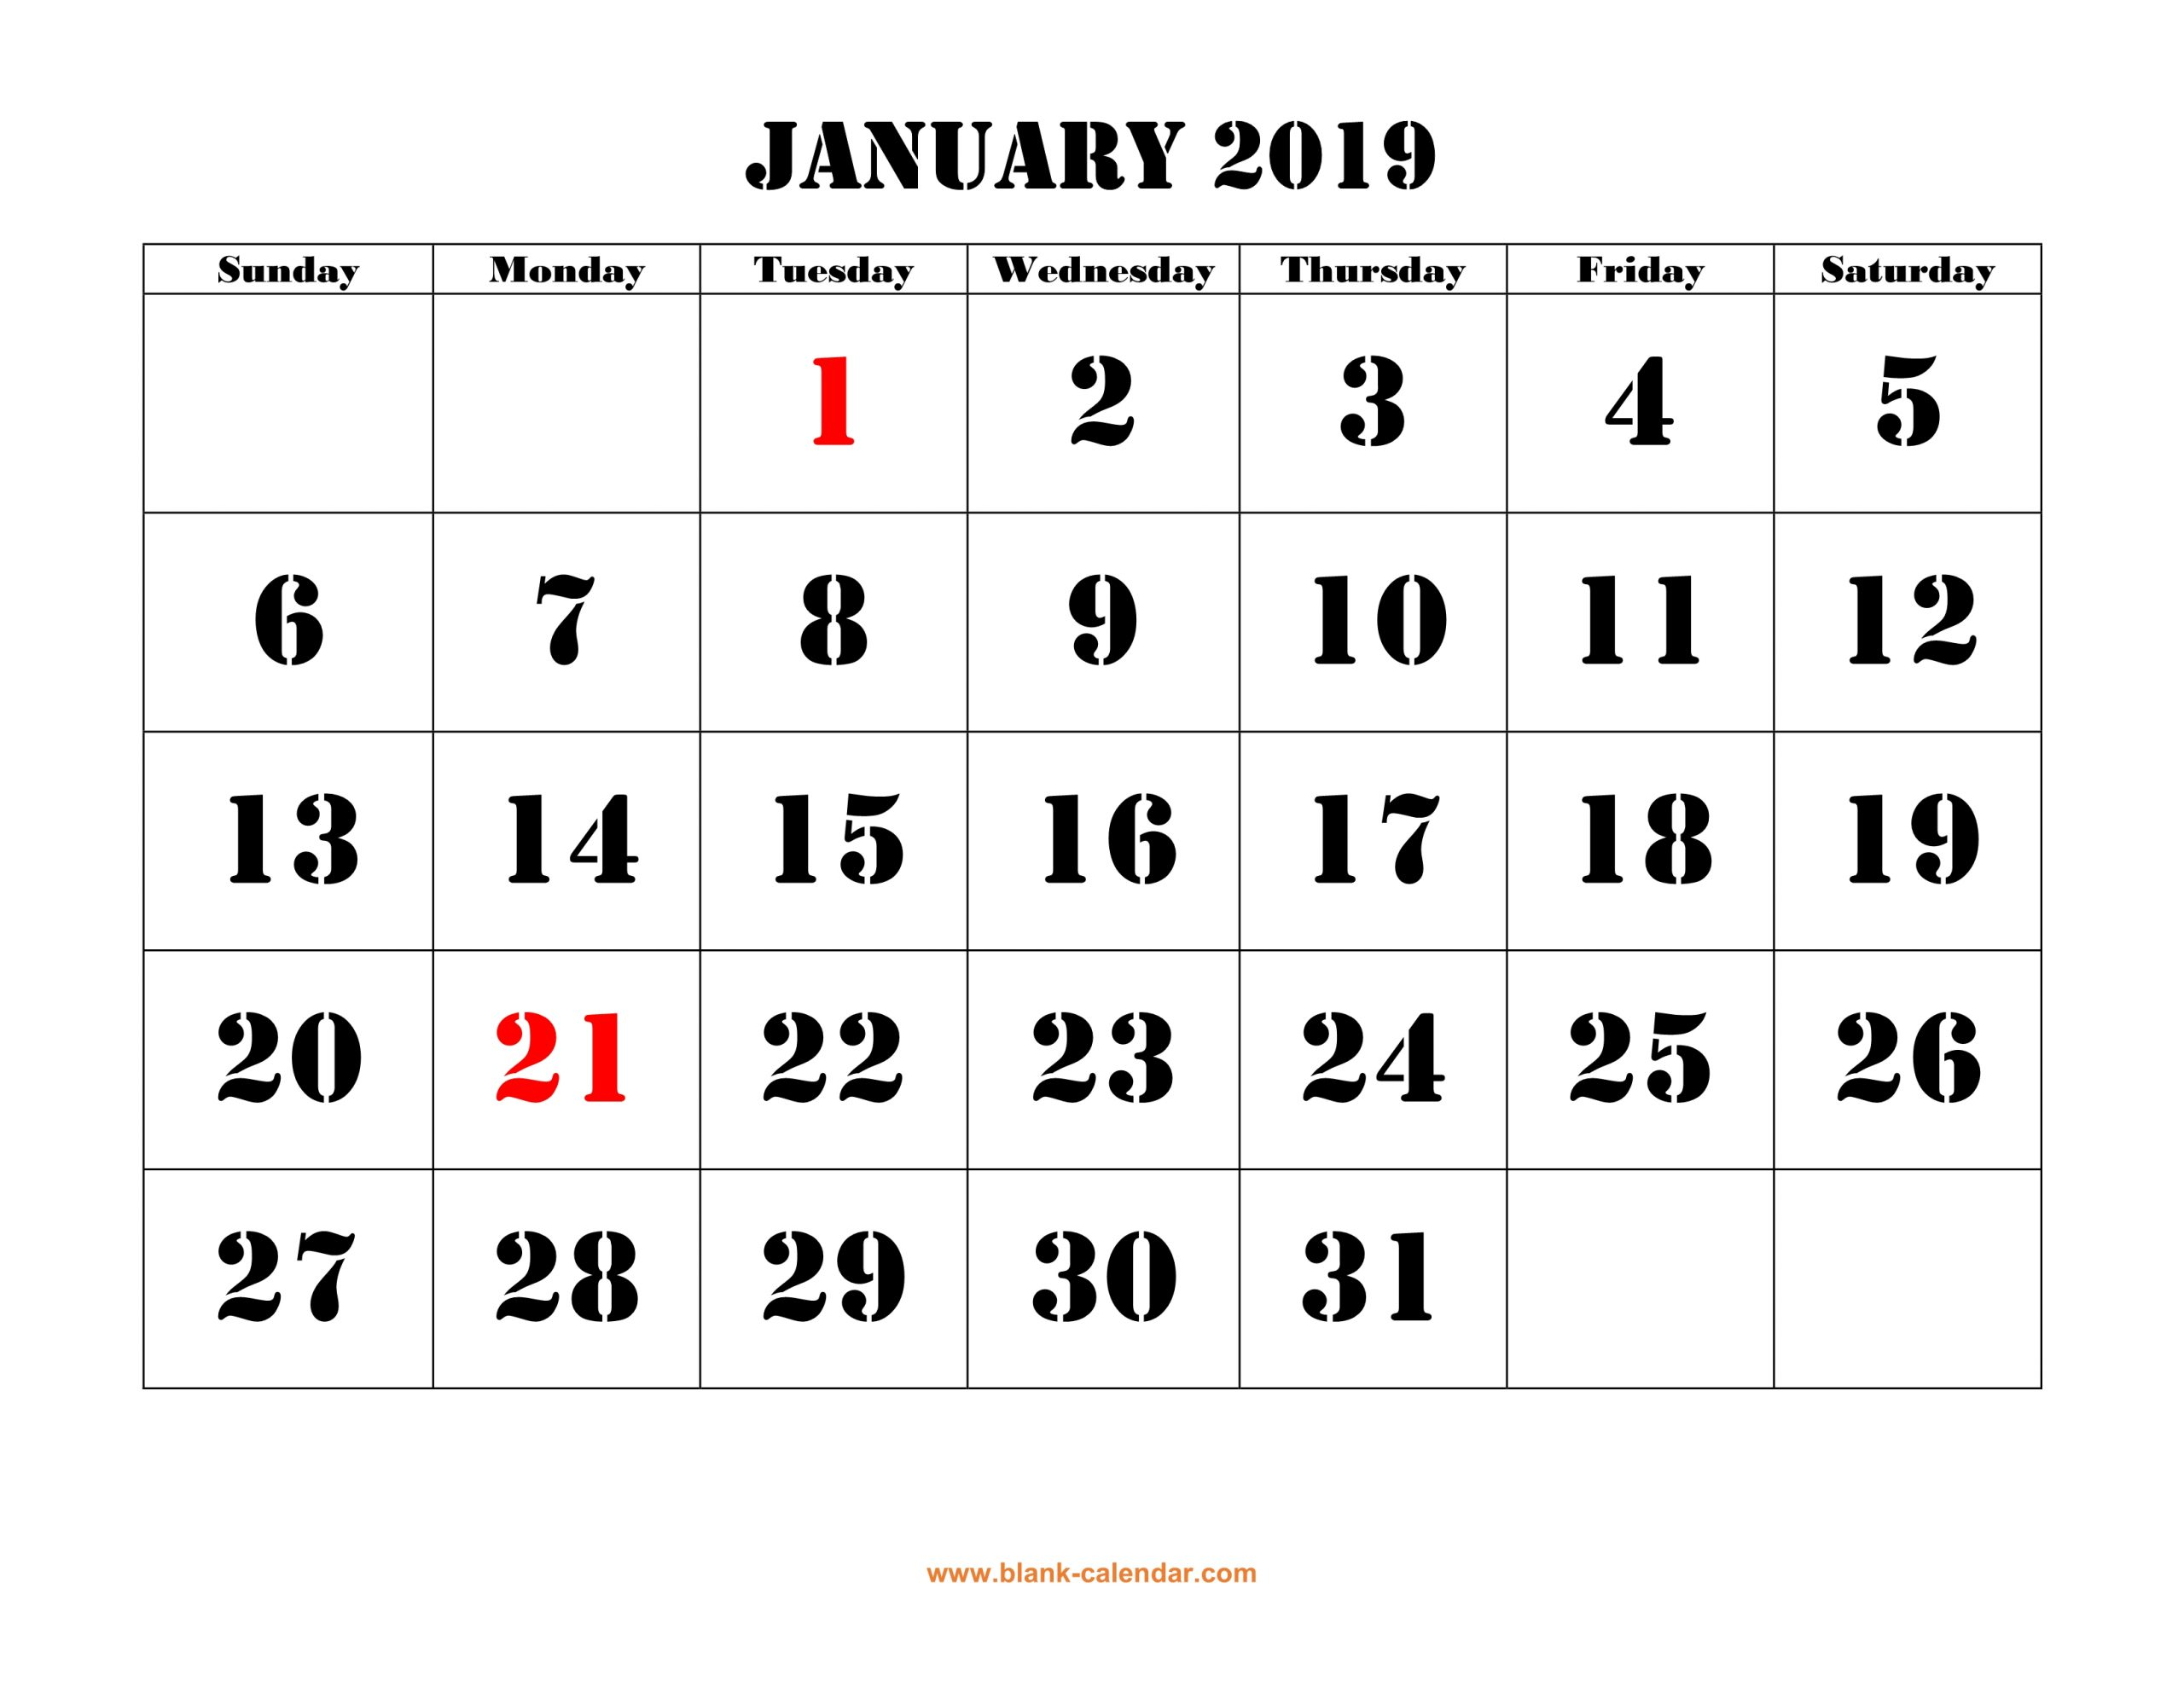 Free Download Printable January 2019 Calendar, Large Font